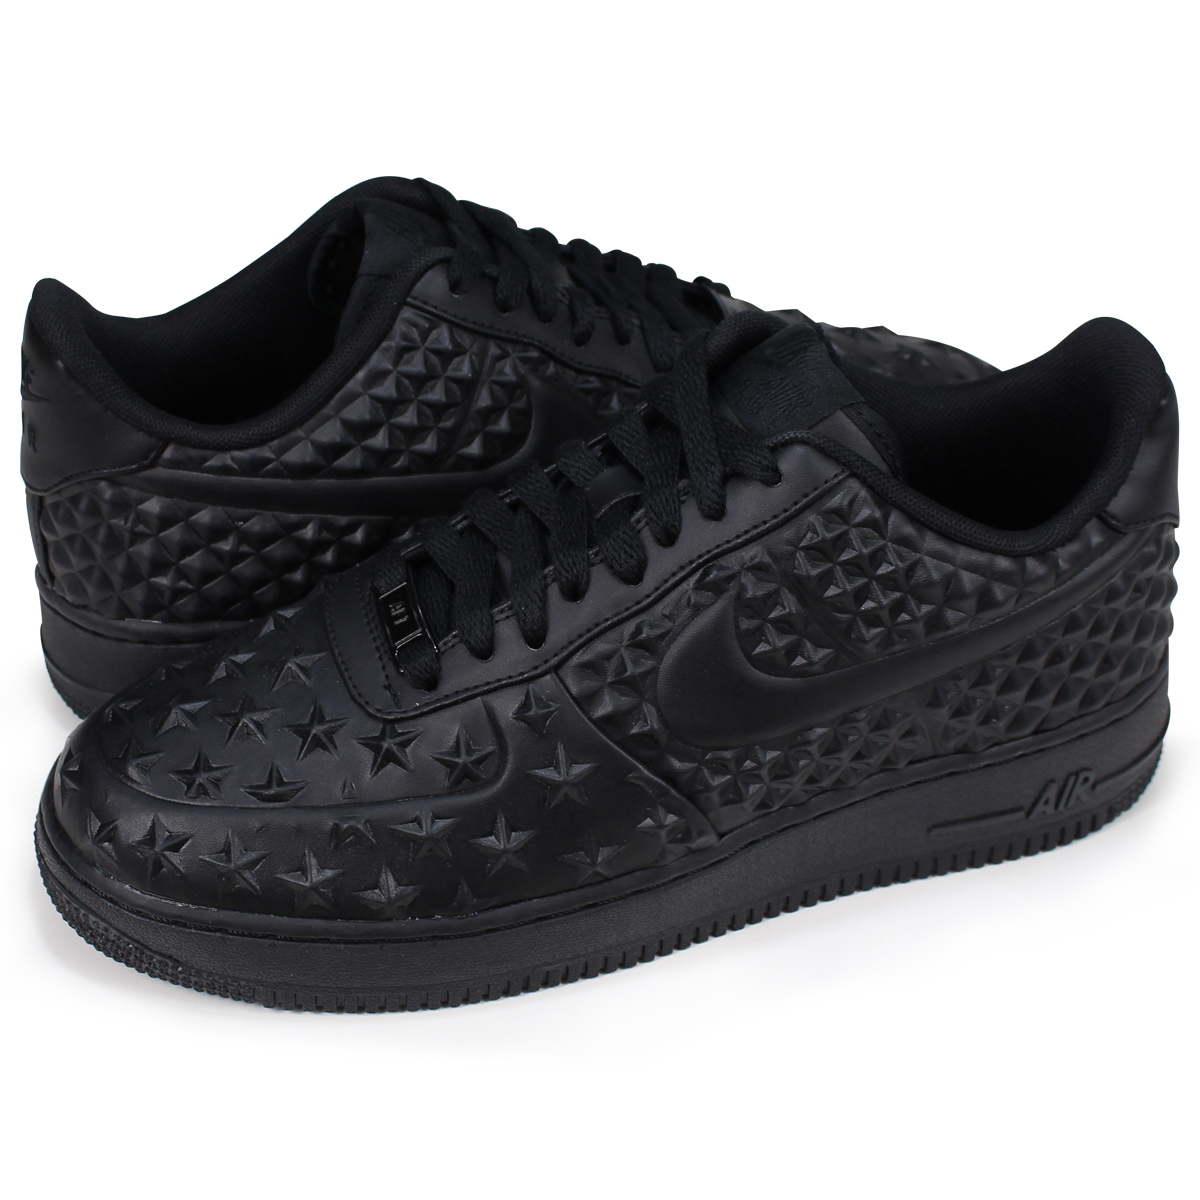 brand new f37e5 7c42d NIKE AIR FORCE 1 LOW 07 LV8 INDEPENDENCE DAY Nike air force 1 sneakers men  789,104-001 black [load planned Shinnyu load in reservation product 6/29 ...